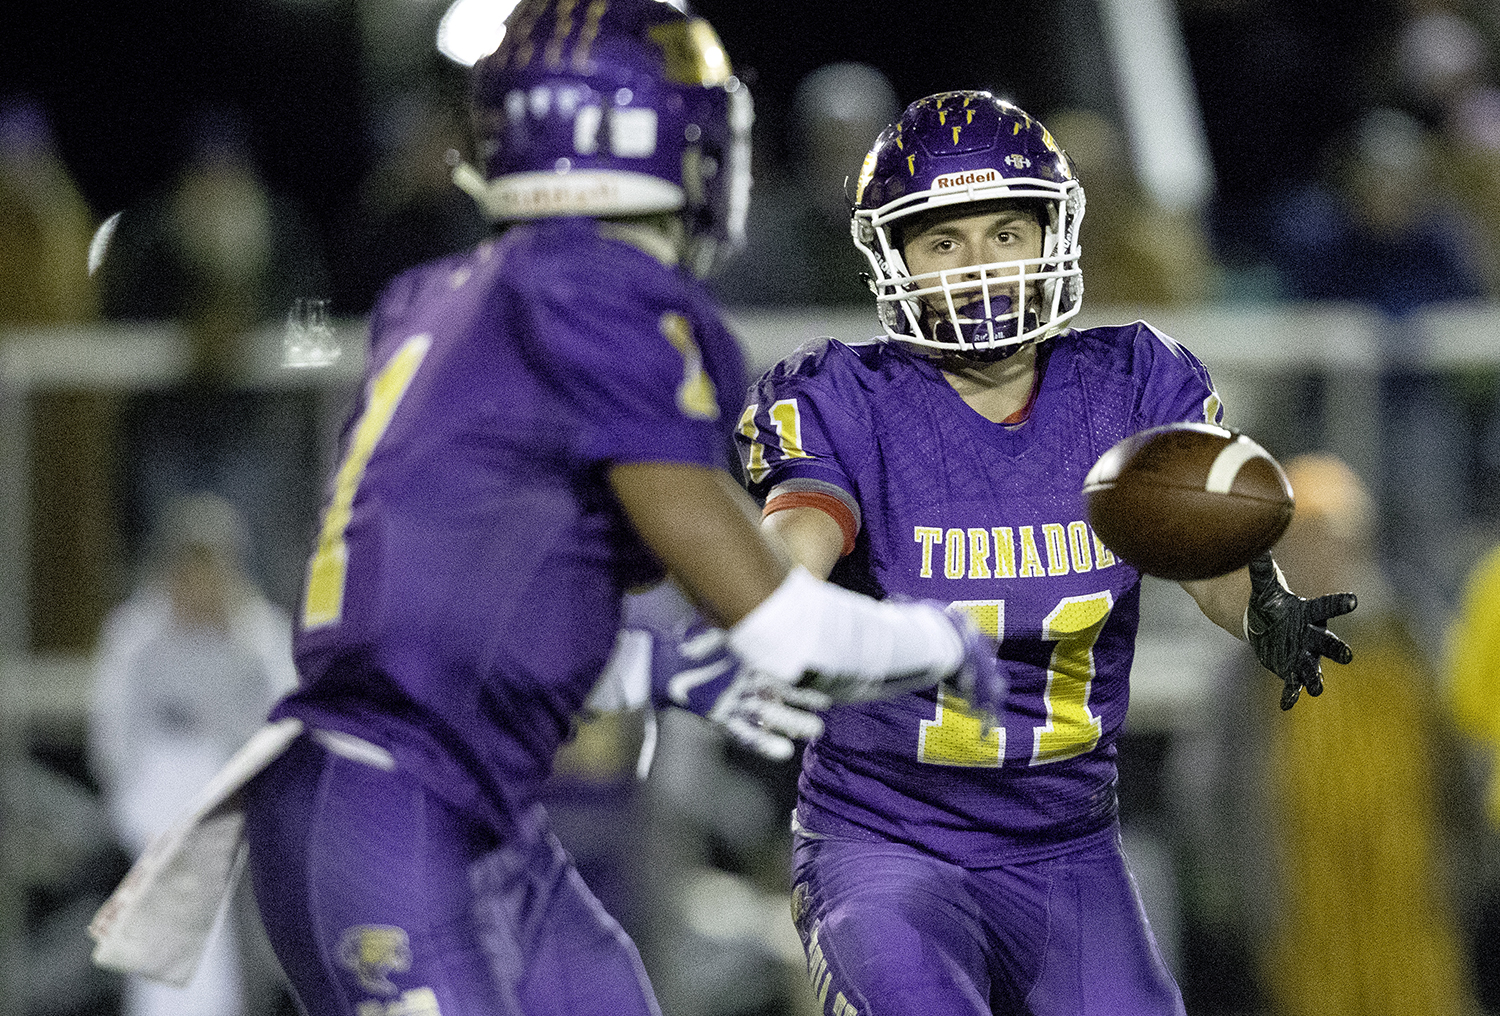 Taylorville's Brandon Odam tosses the ball to Taylorville's Yemi Obdugbesan during the Class 4A quarterfinals in Taylorville Saturday, Nov. 10, 2018. [Ted Schurter/The State Journal-Register]